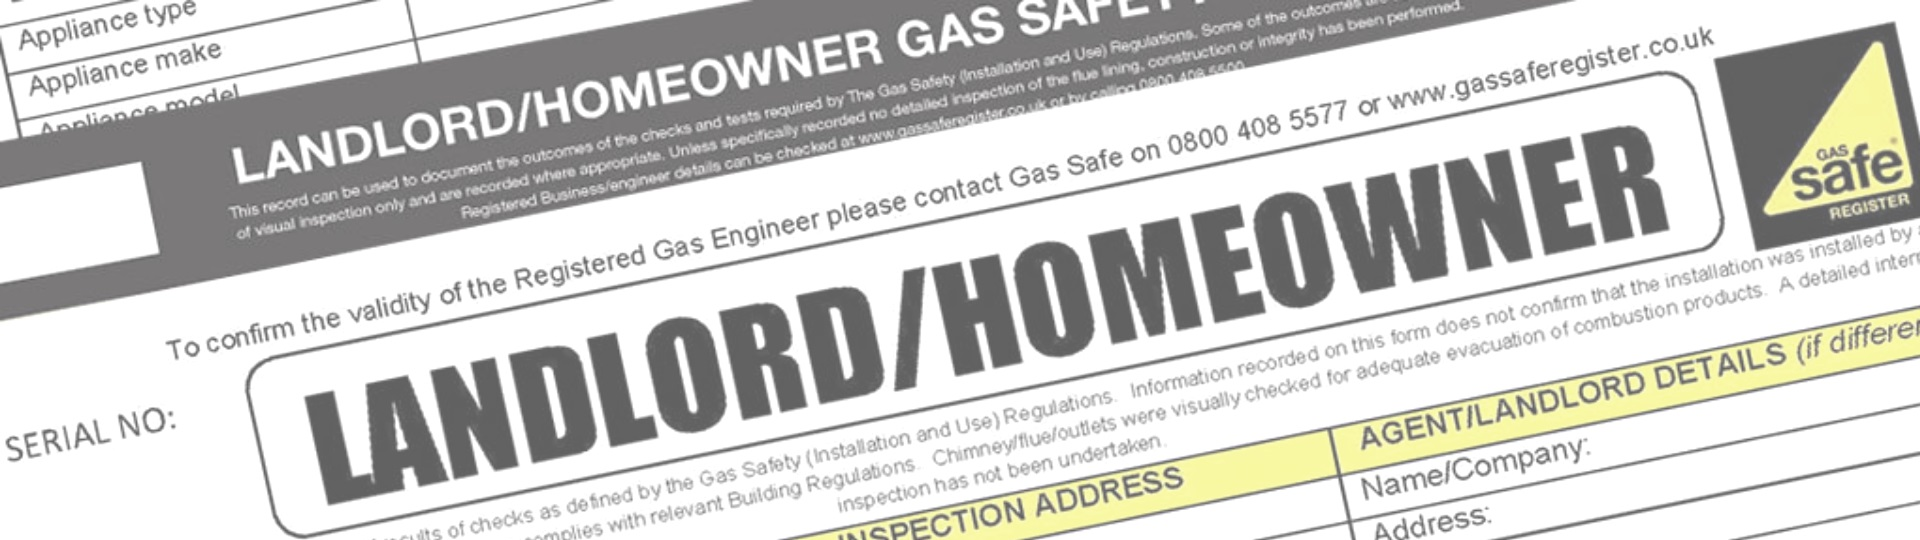 Gas Saftey Certificates Oldland Common